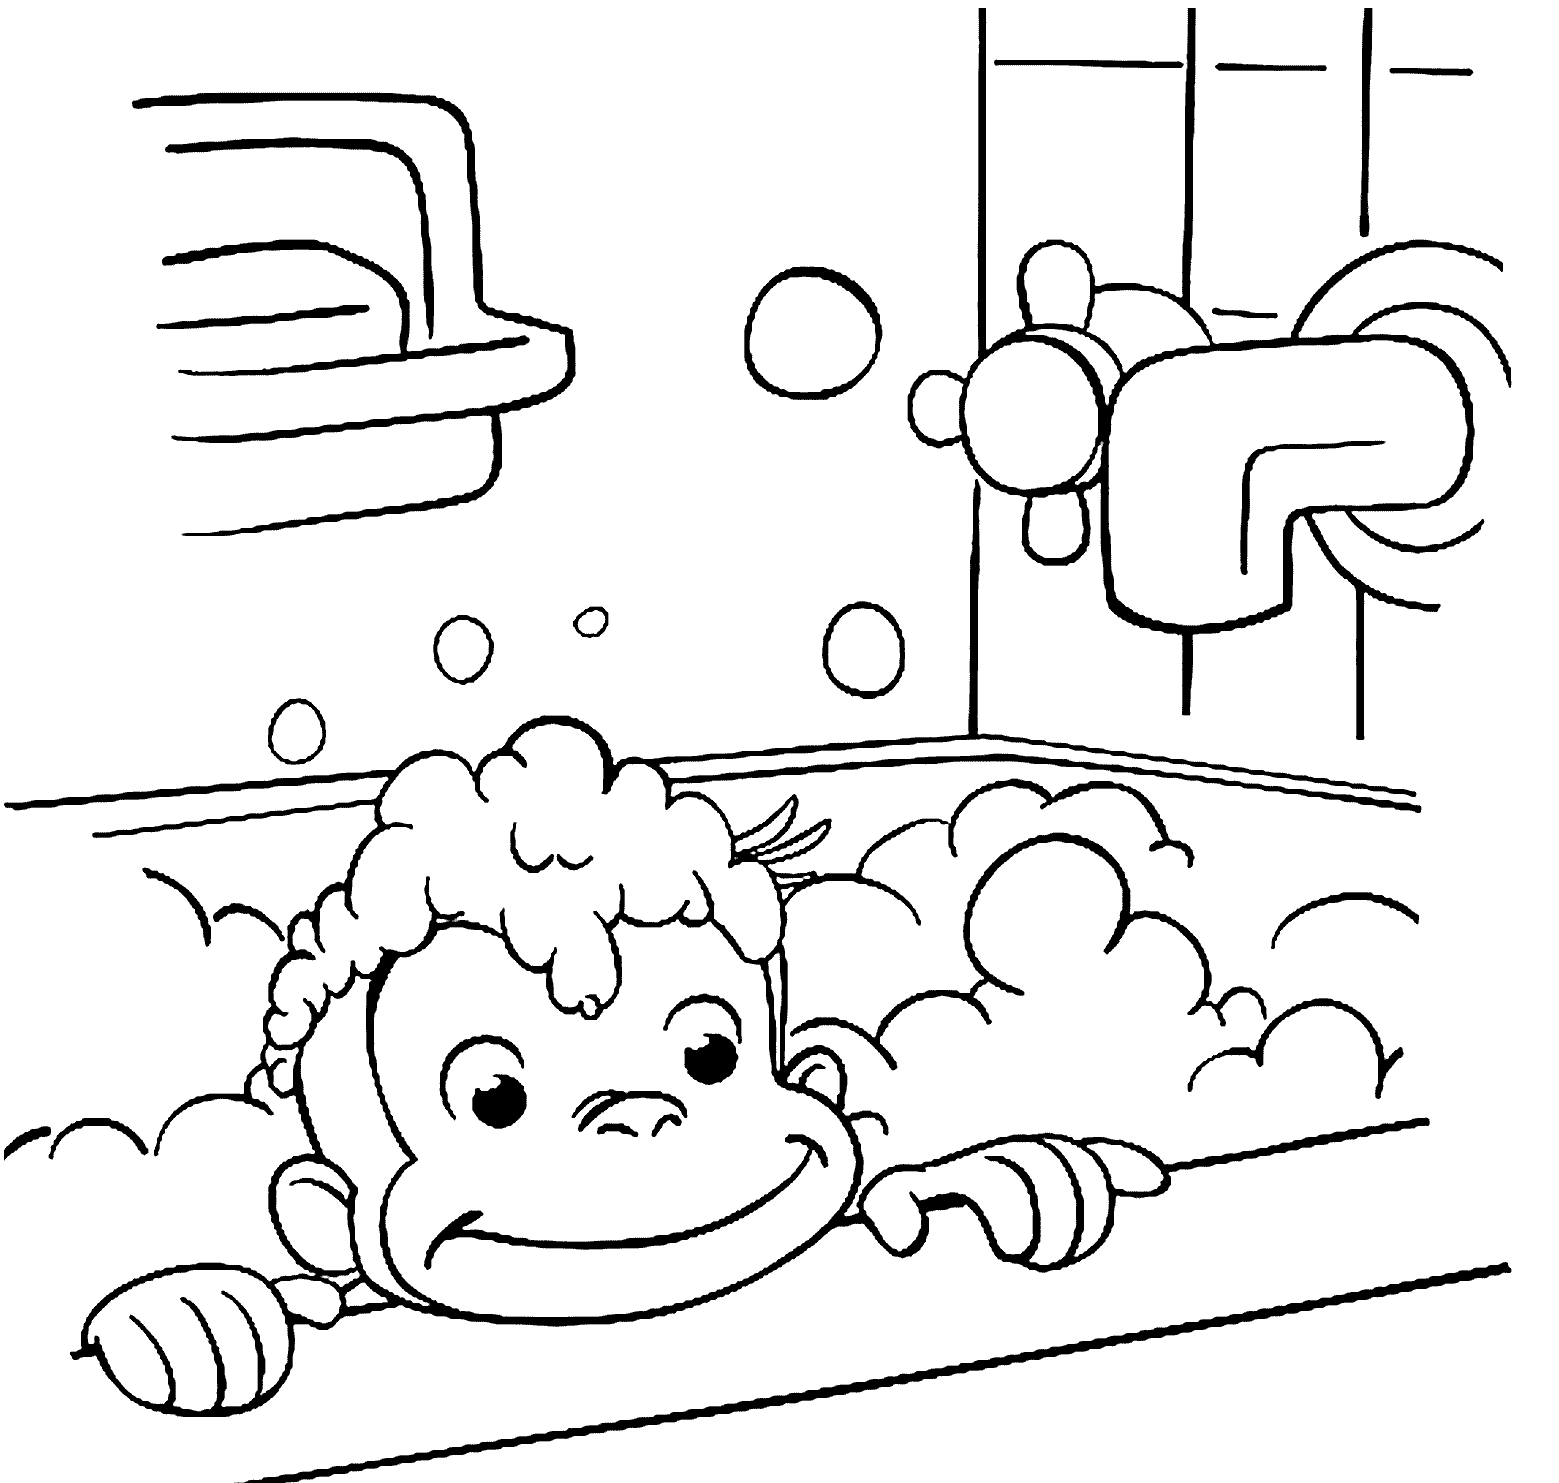 George Washington Carver Coloring Page Curious George Coloring Pages To Download And Print For Free